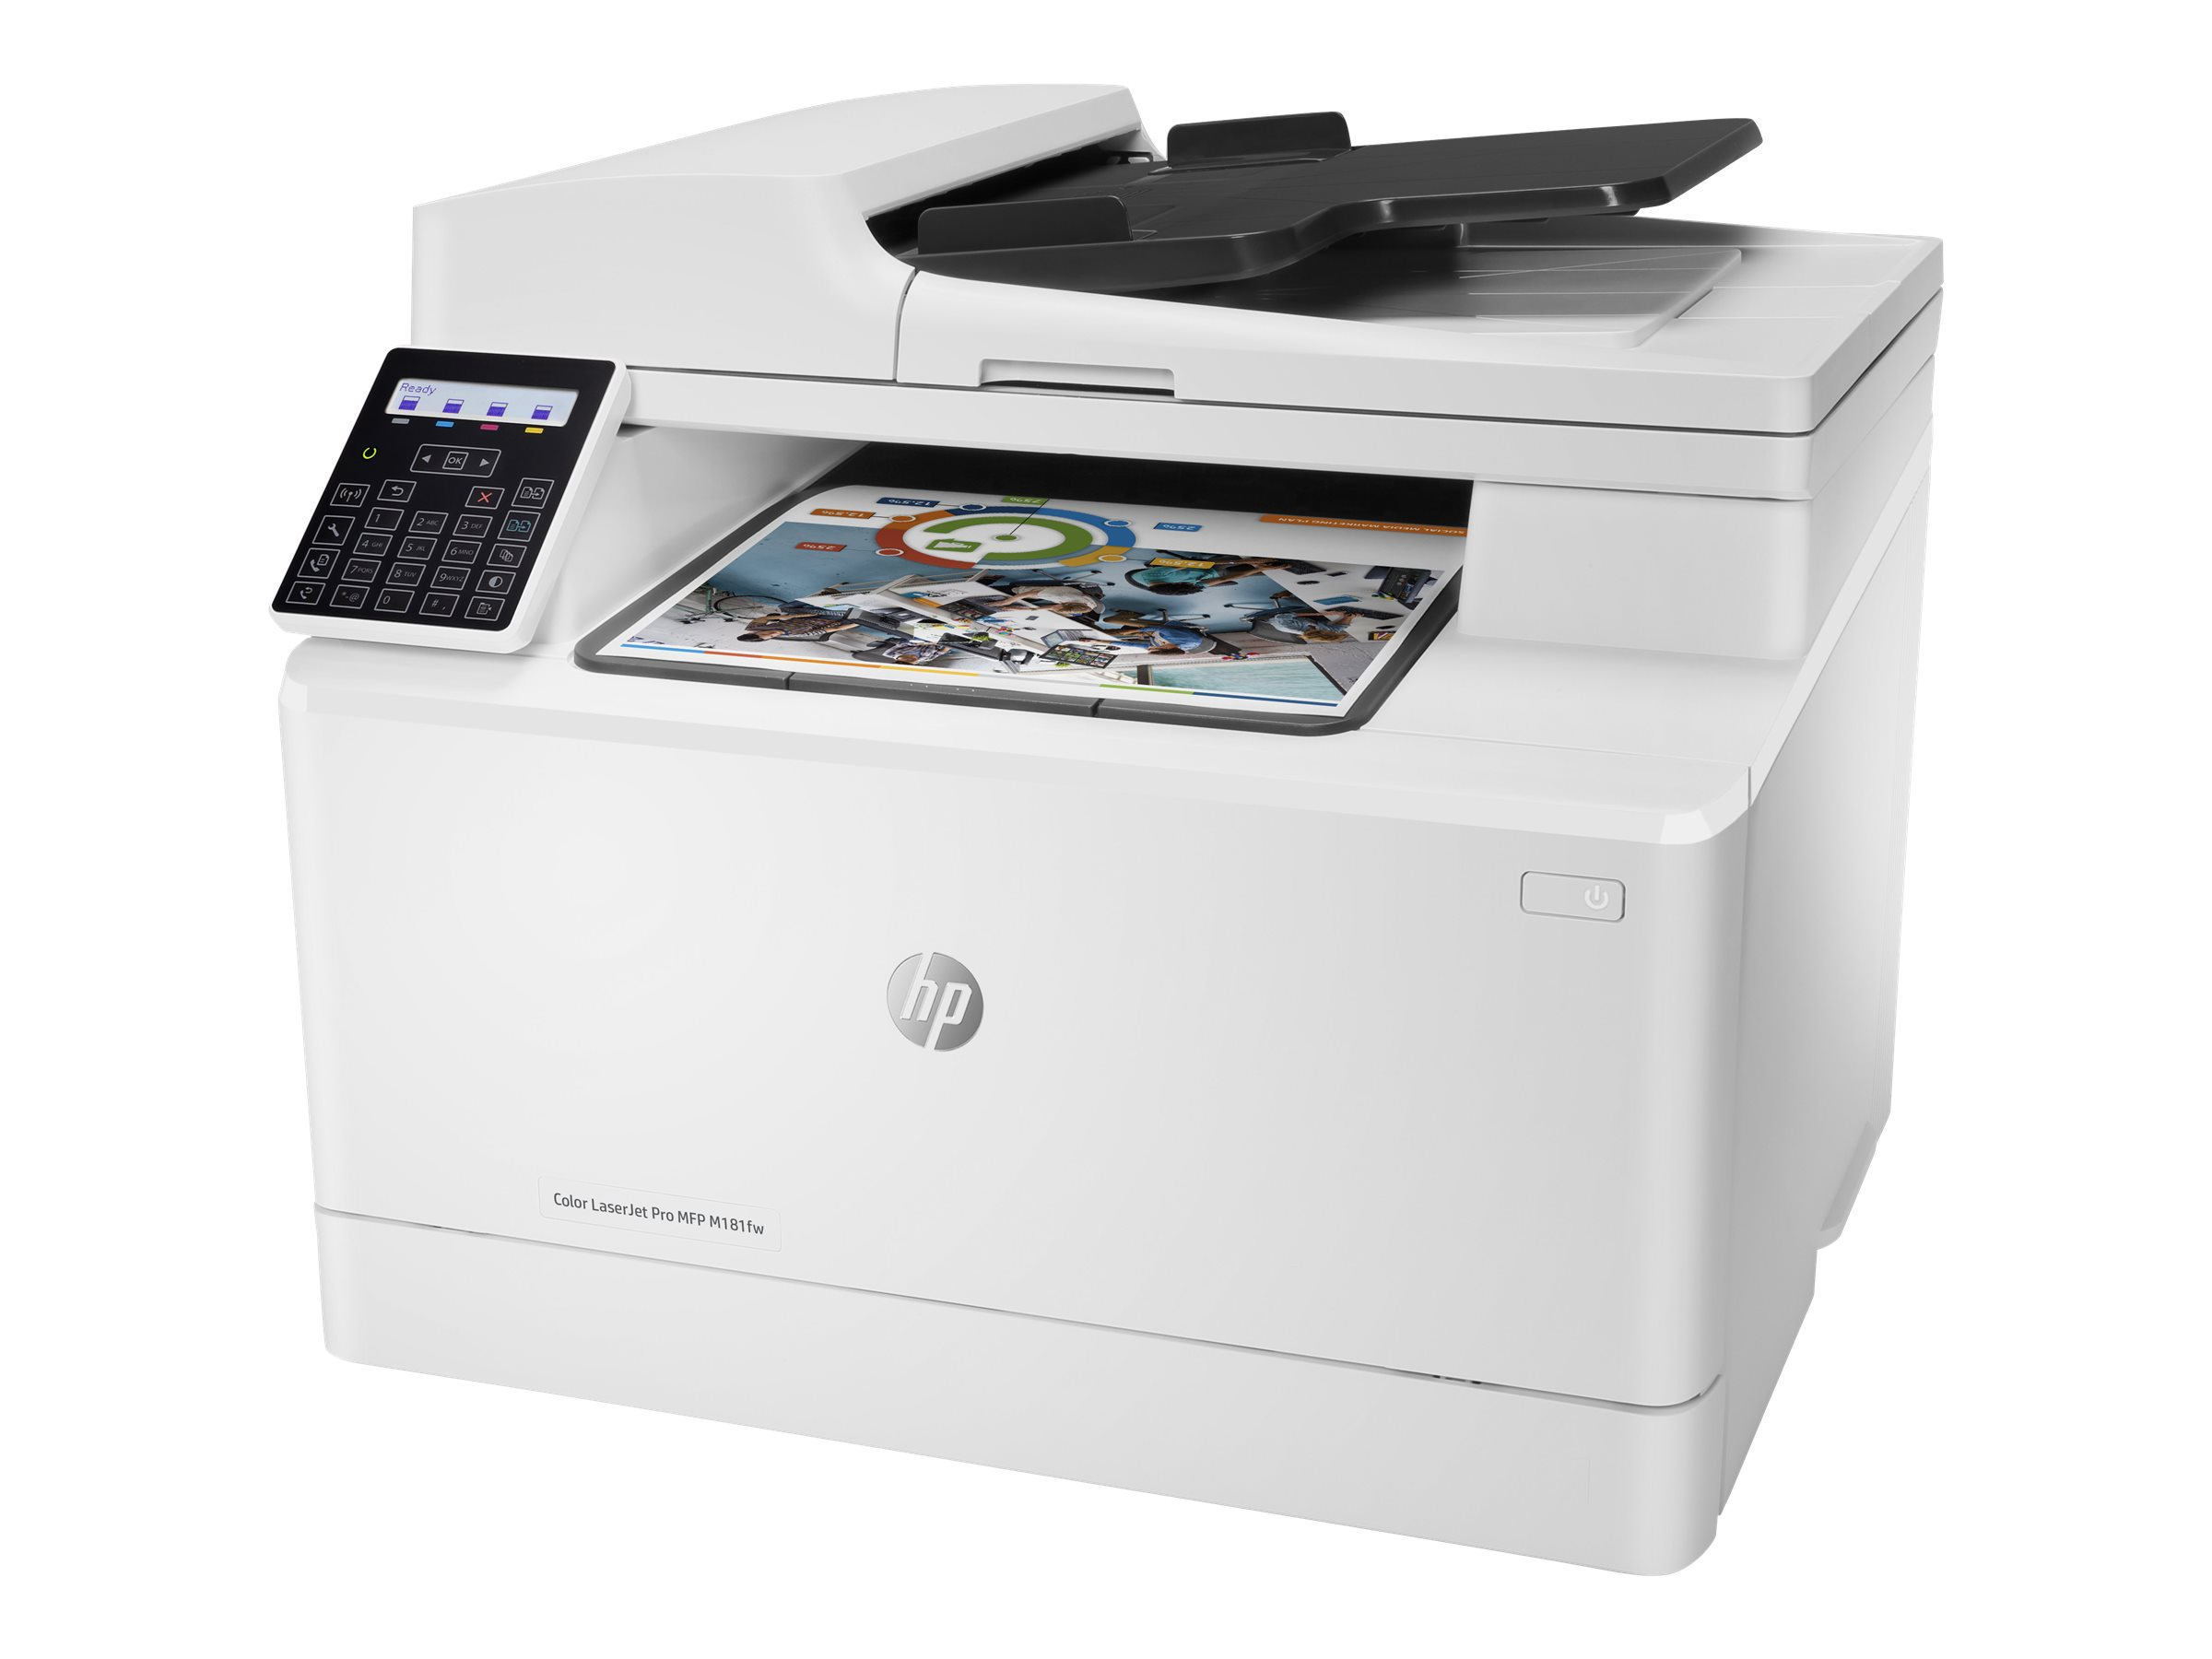 hp color laserjet pro mfp m181fw imprimante multifonctions couleur laser imprimantes. Black Bedroom Furniture Sets. Home Design Ideas